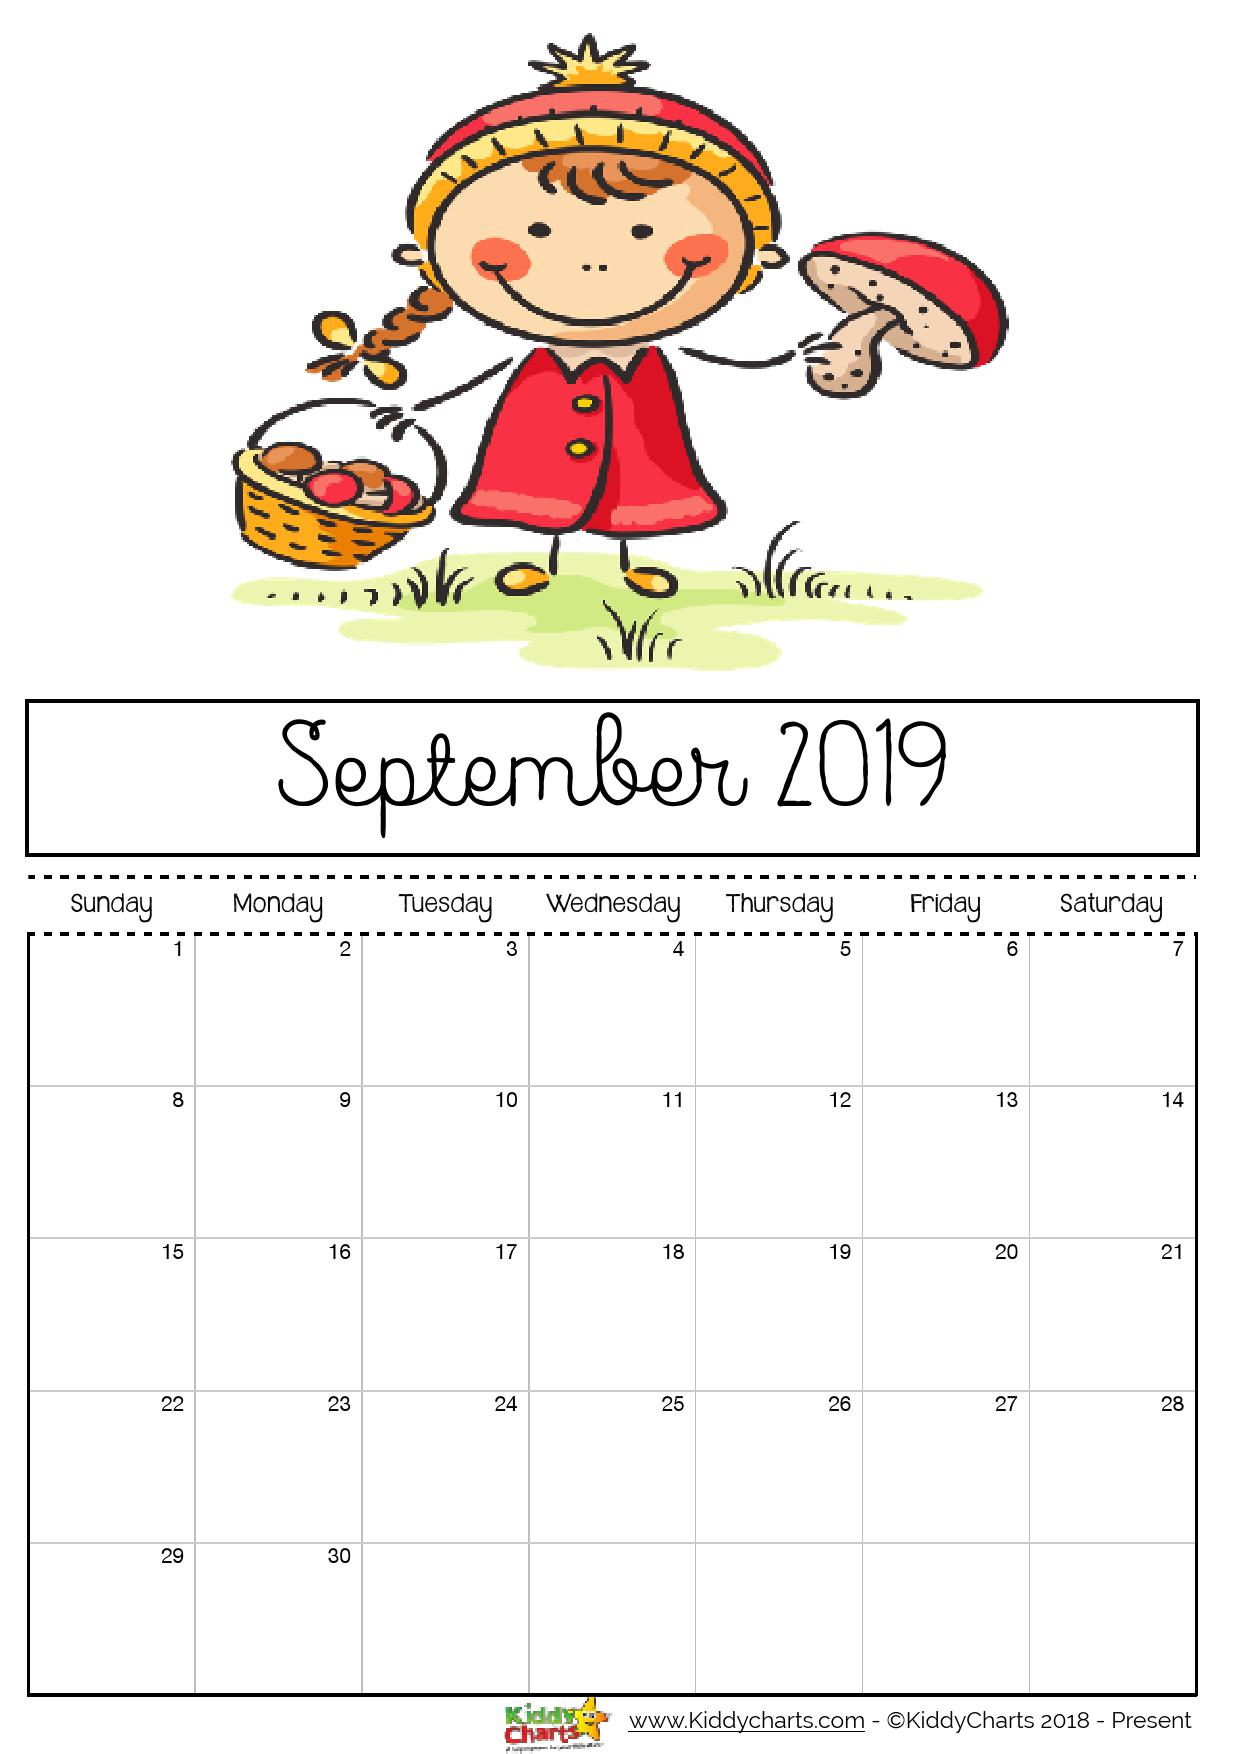 September printable 2019 calendar; girl foraging for mushrooms. What a great idea for September too! #printables #freeprintables #2019calendar